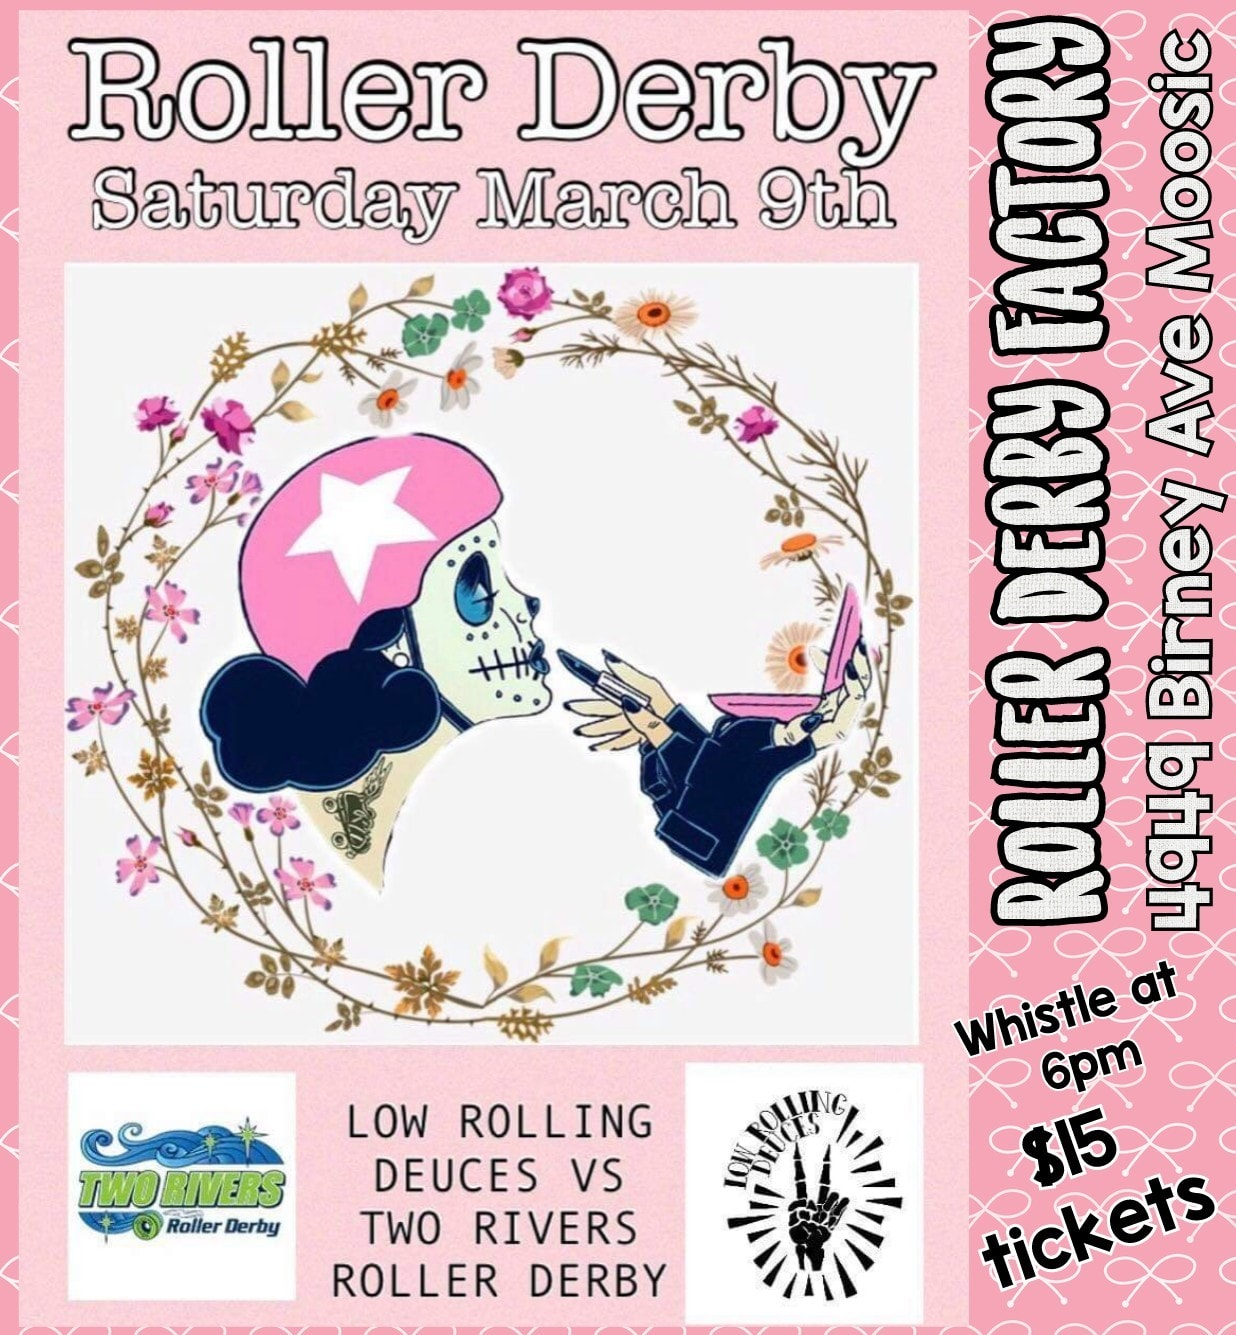 Low Rolling Deuces vs Two Rivers - 4949 Birney Ave Moosic, PAMarch 9th at 6pmTickets are $15